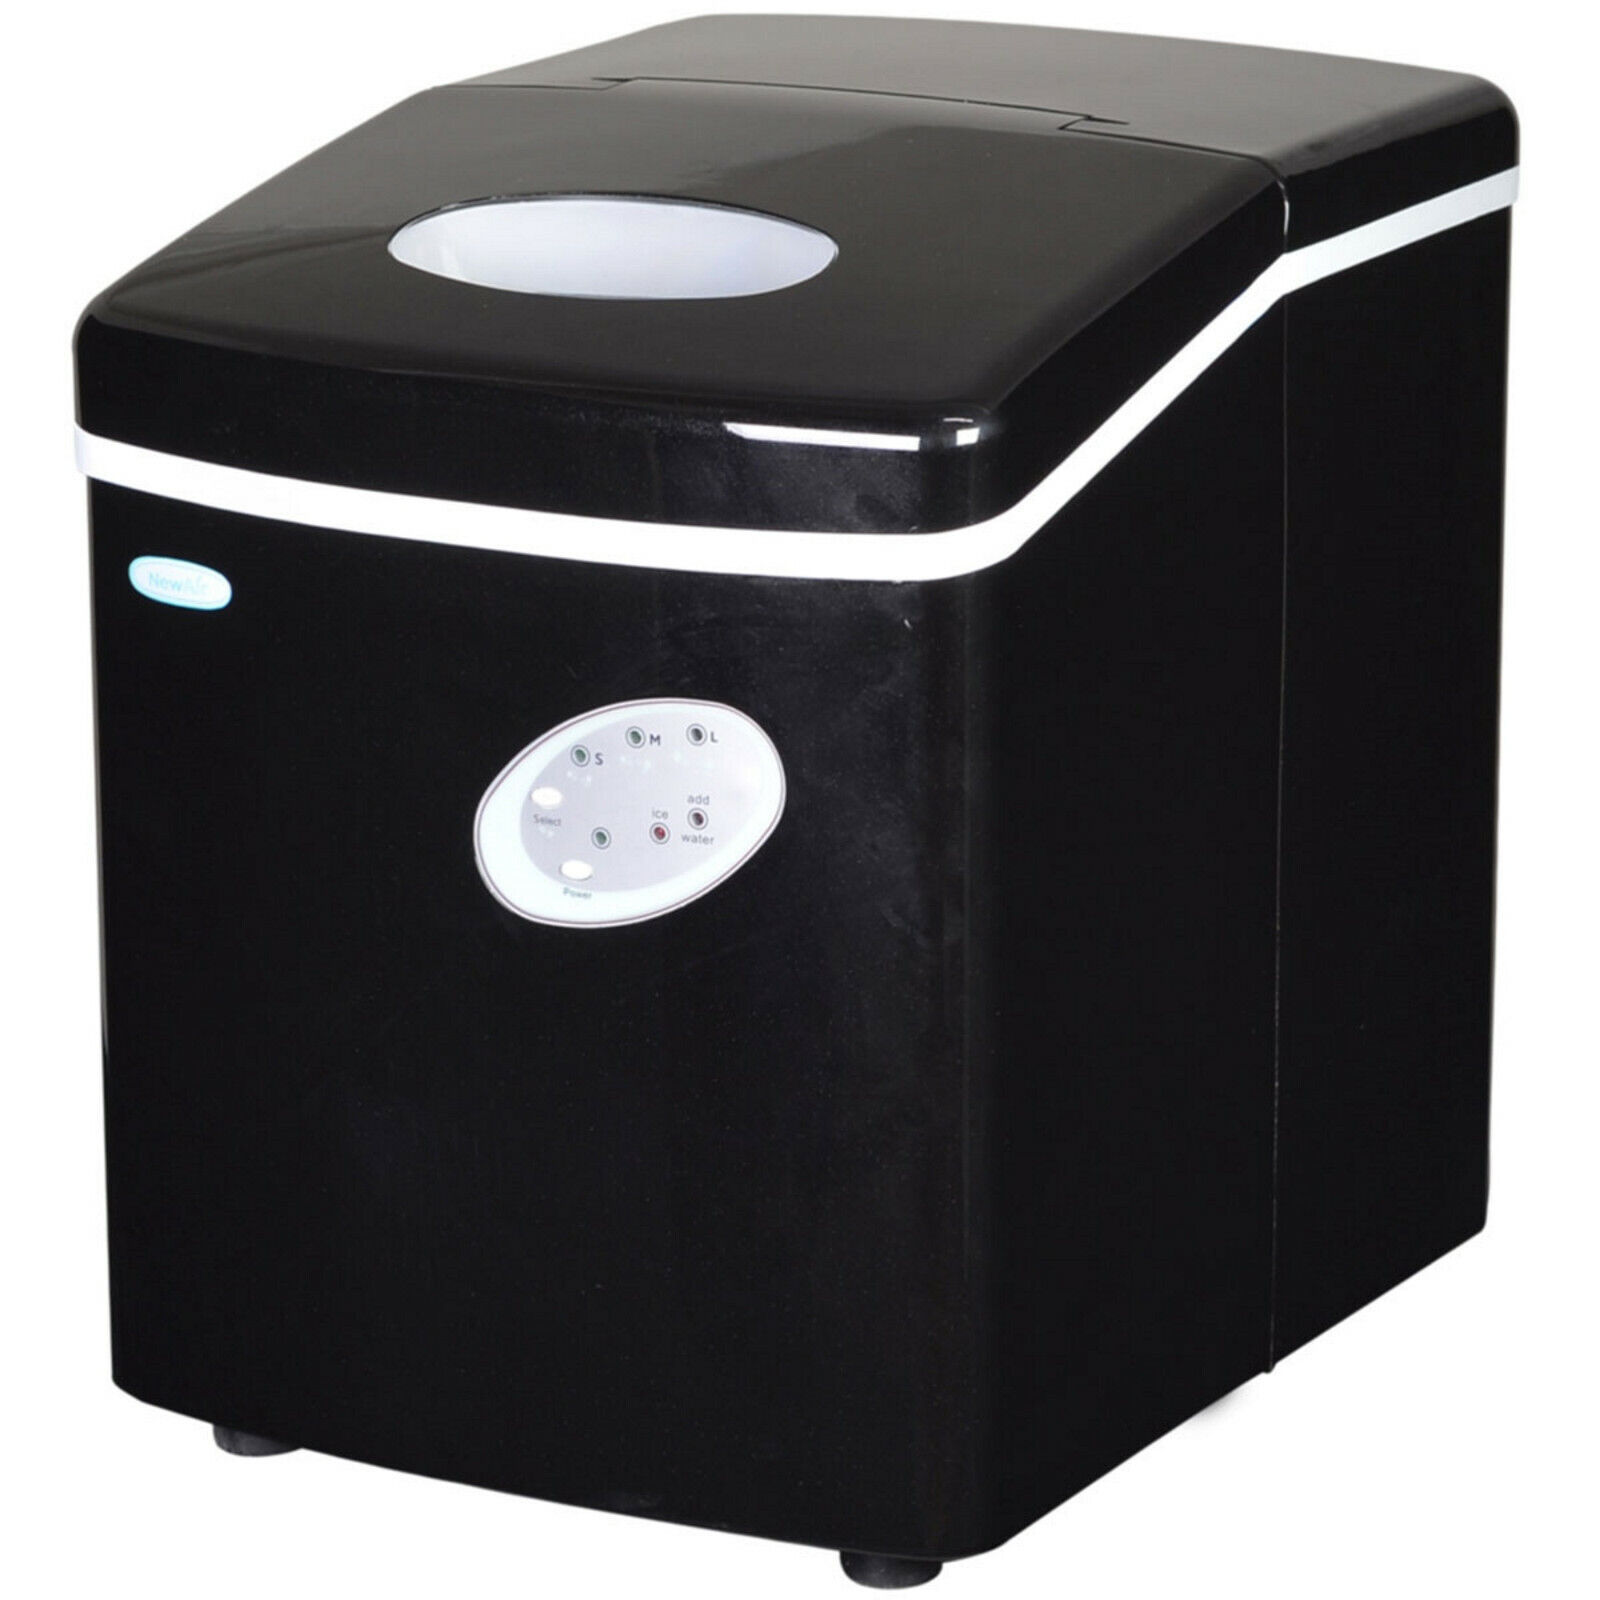 NewAir Portable Ice Maker 28 lb. Perfect for Countertops - AI-100 - REFURBISHED